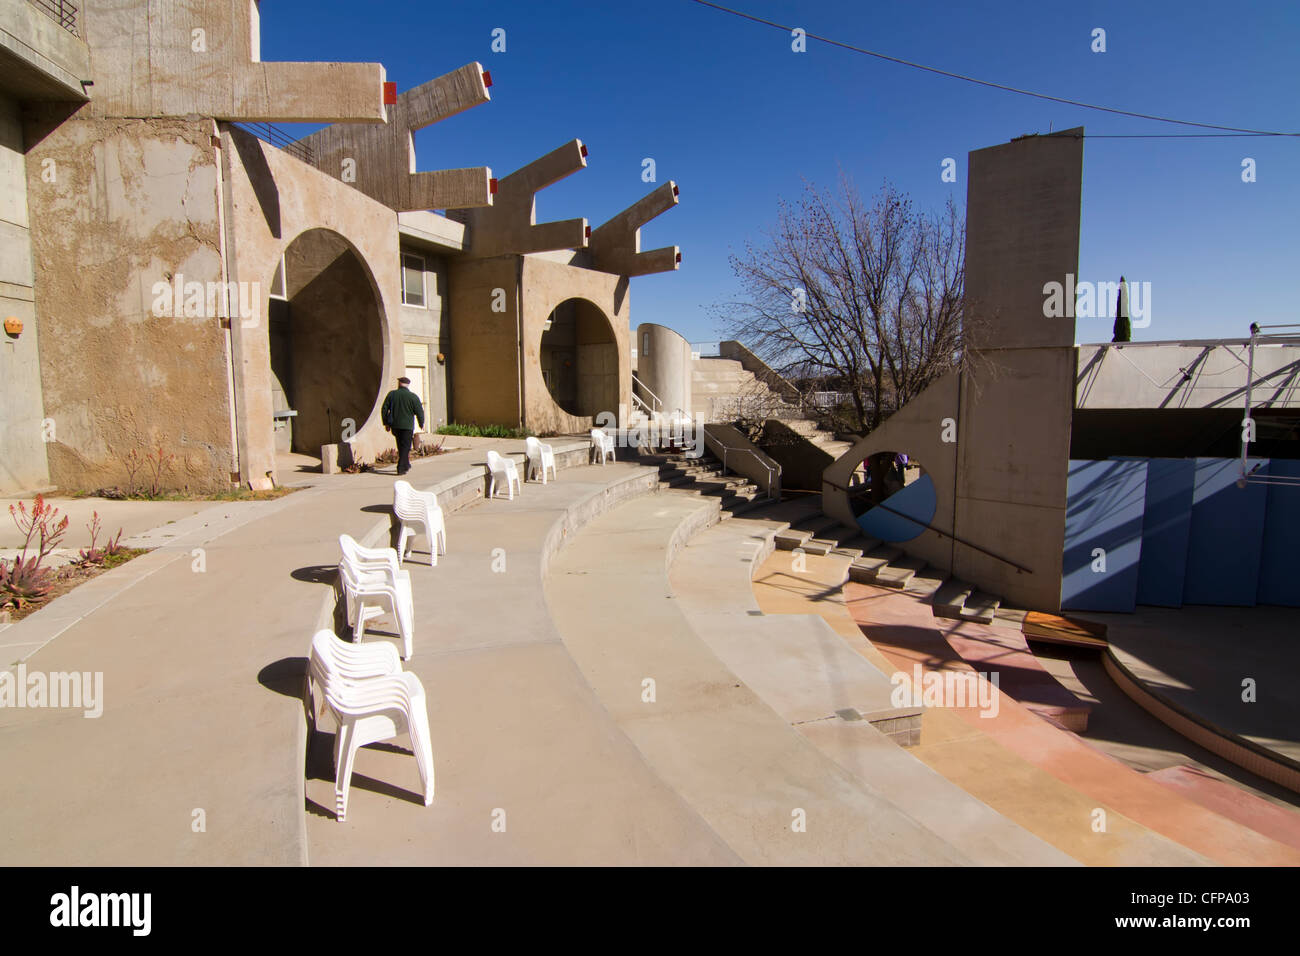 Arcosanti, an experimental town in the desert of Arizona, built to embody Paolo Soleri's concept of arcology. - Stock Image